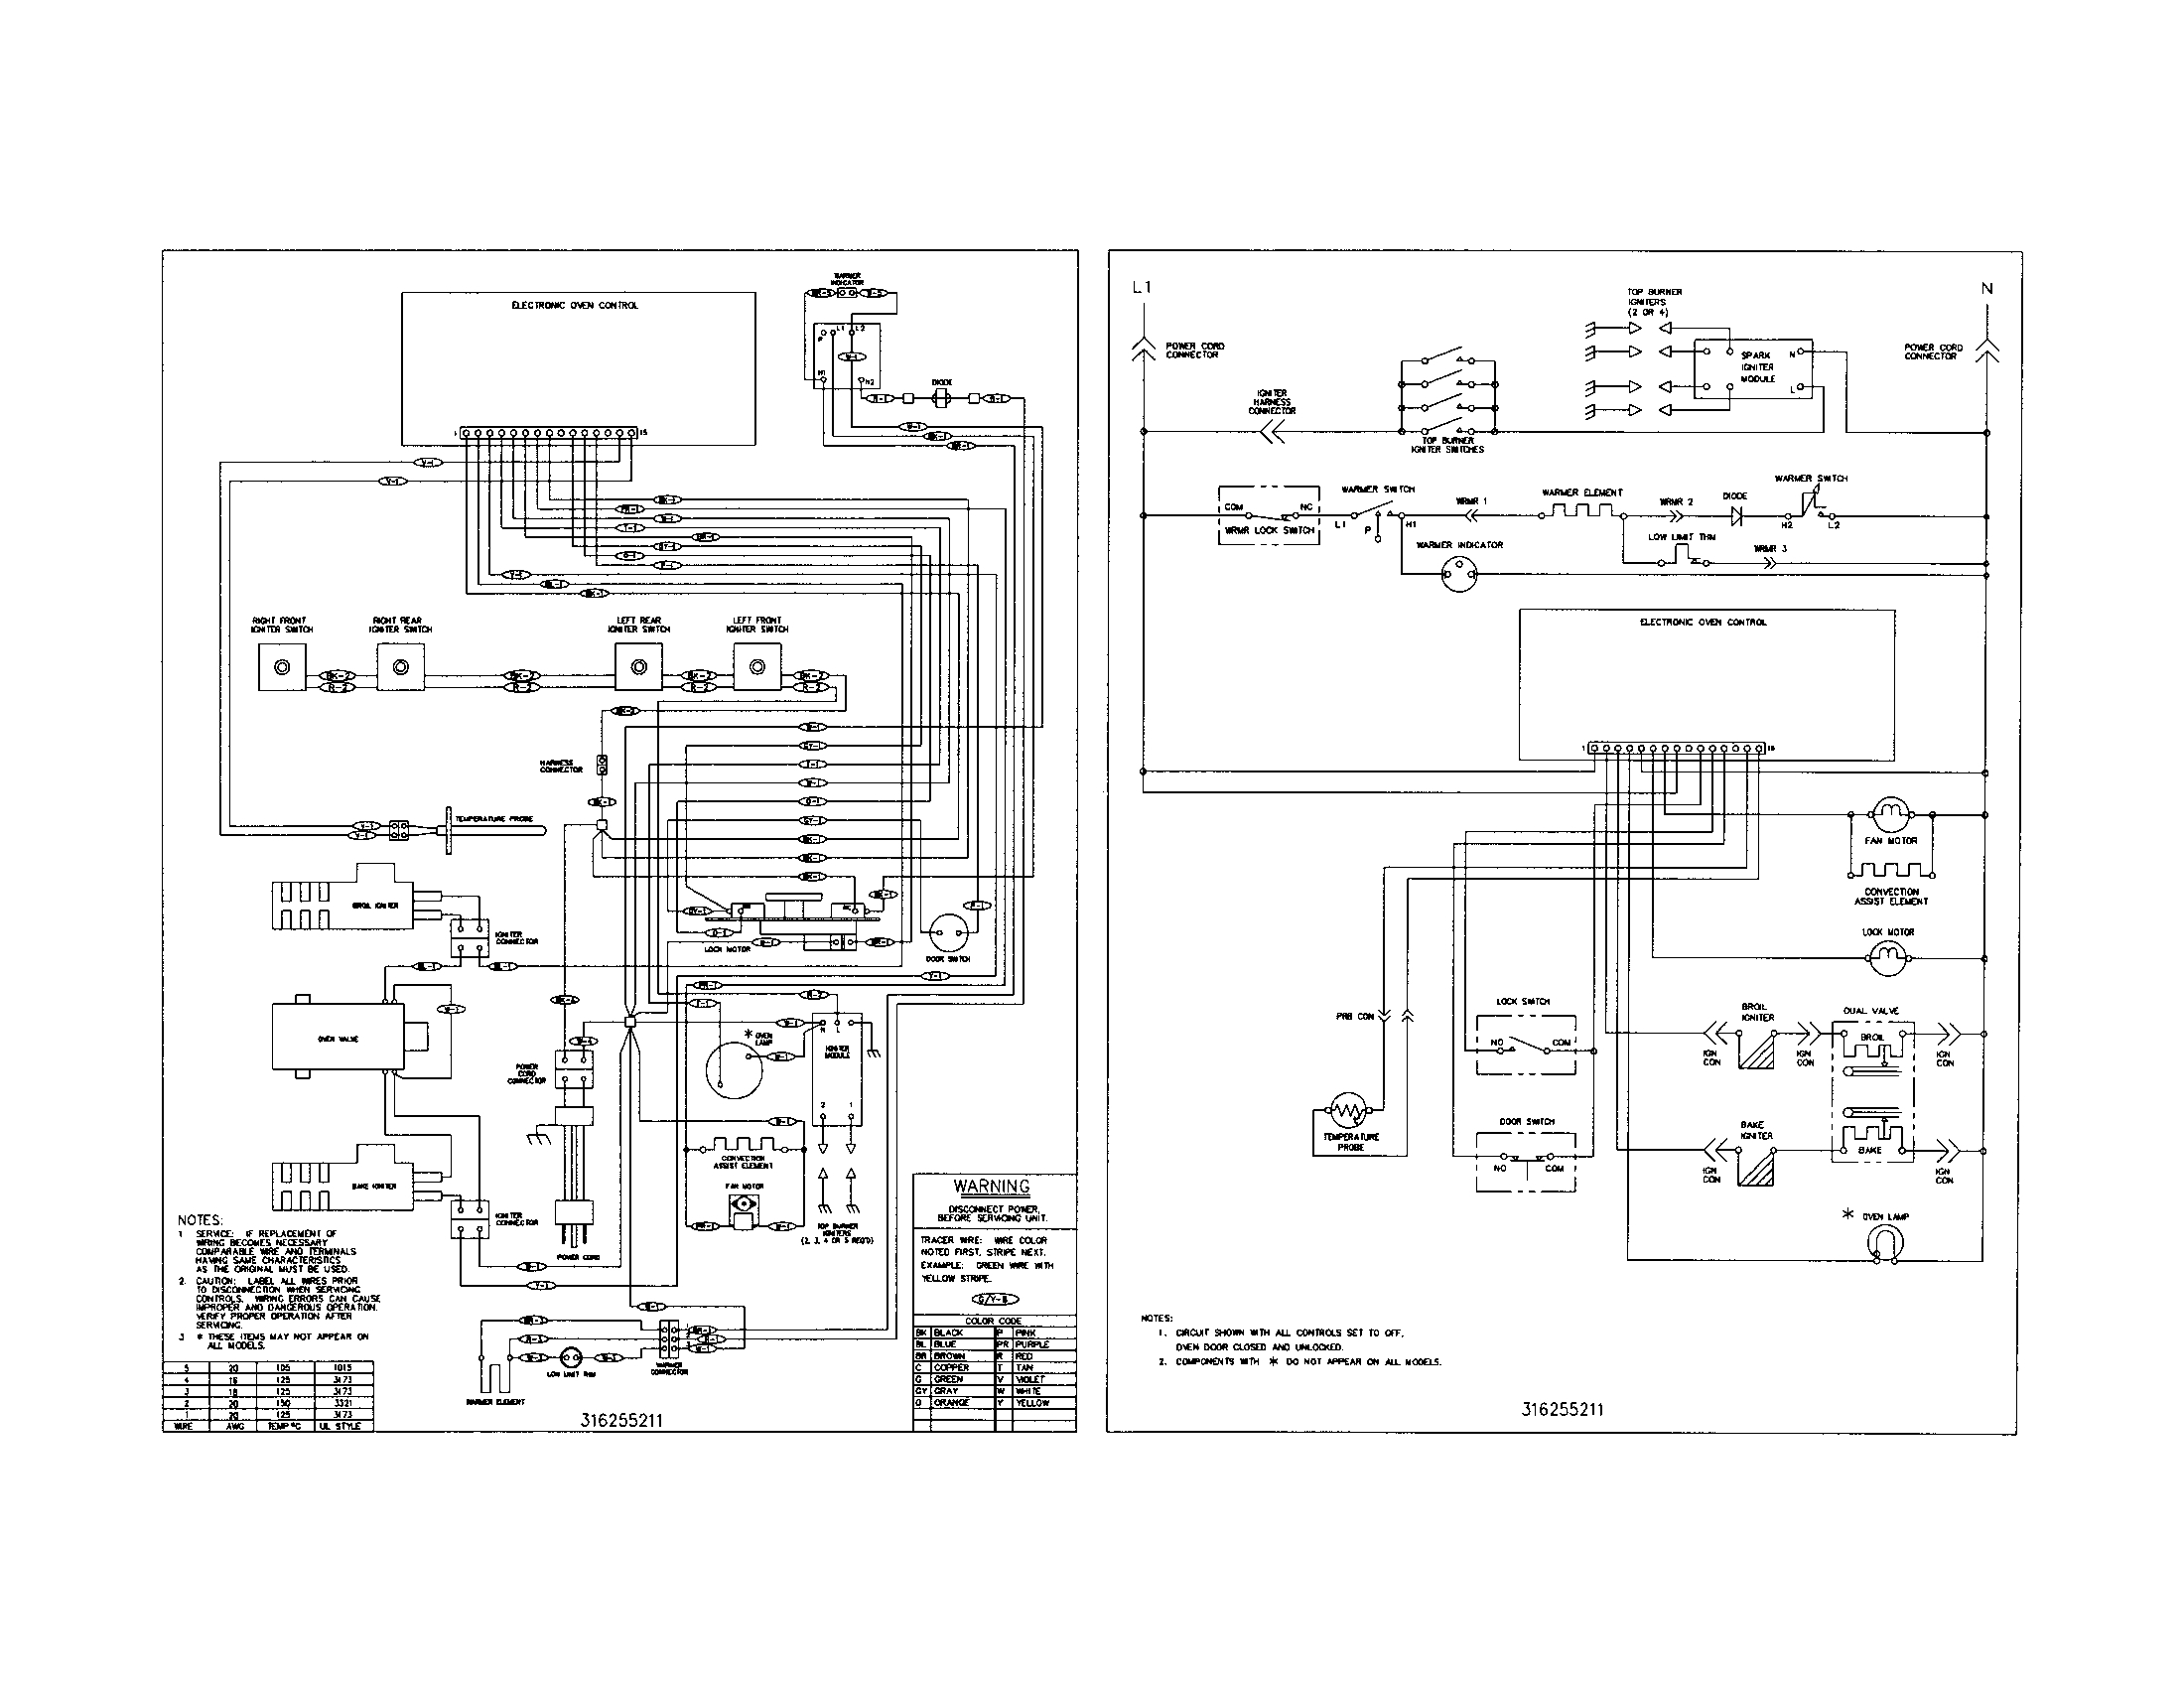 frigidaire electric range wiring diagram Collection-frigidaire dryer wiring diagram Collection Frigidaire Dryer Wiring Diagram Luxury Amazing Free Sample Ideas Frigidaire DOWNLOAD Wiring Diagram 14-p